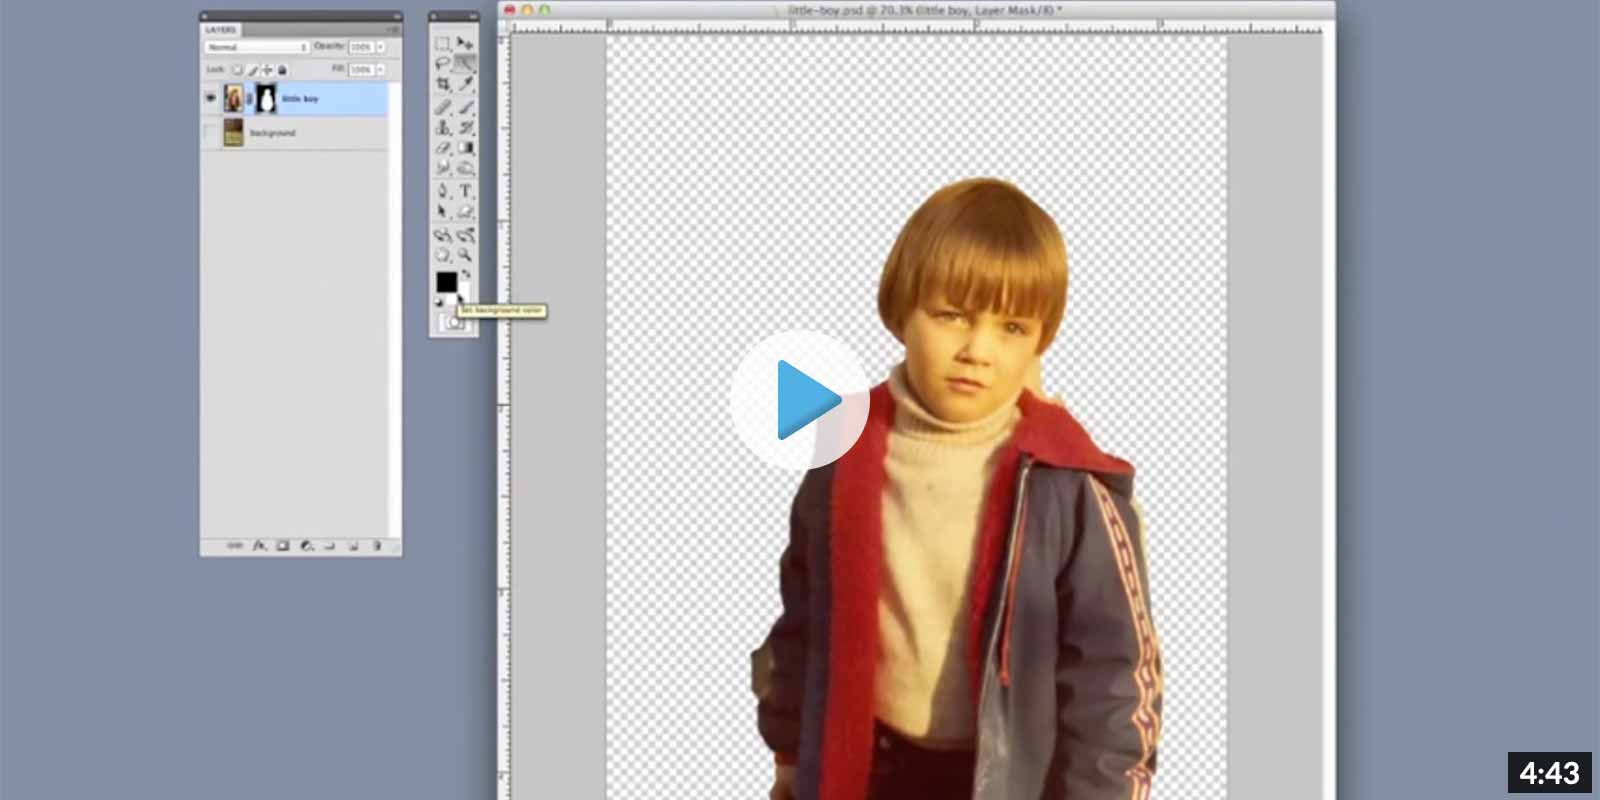 How to remove a background in photoshop - Video Tutorial